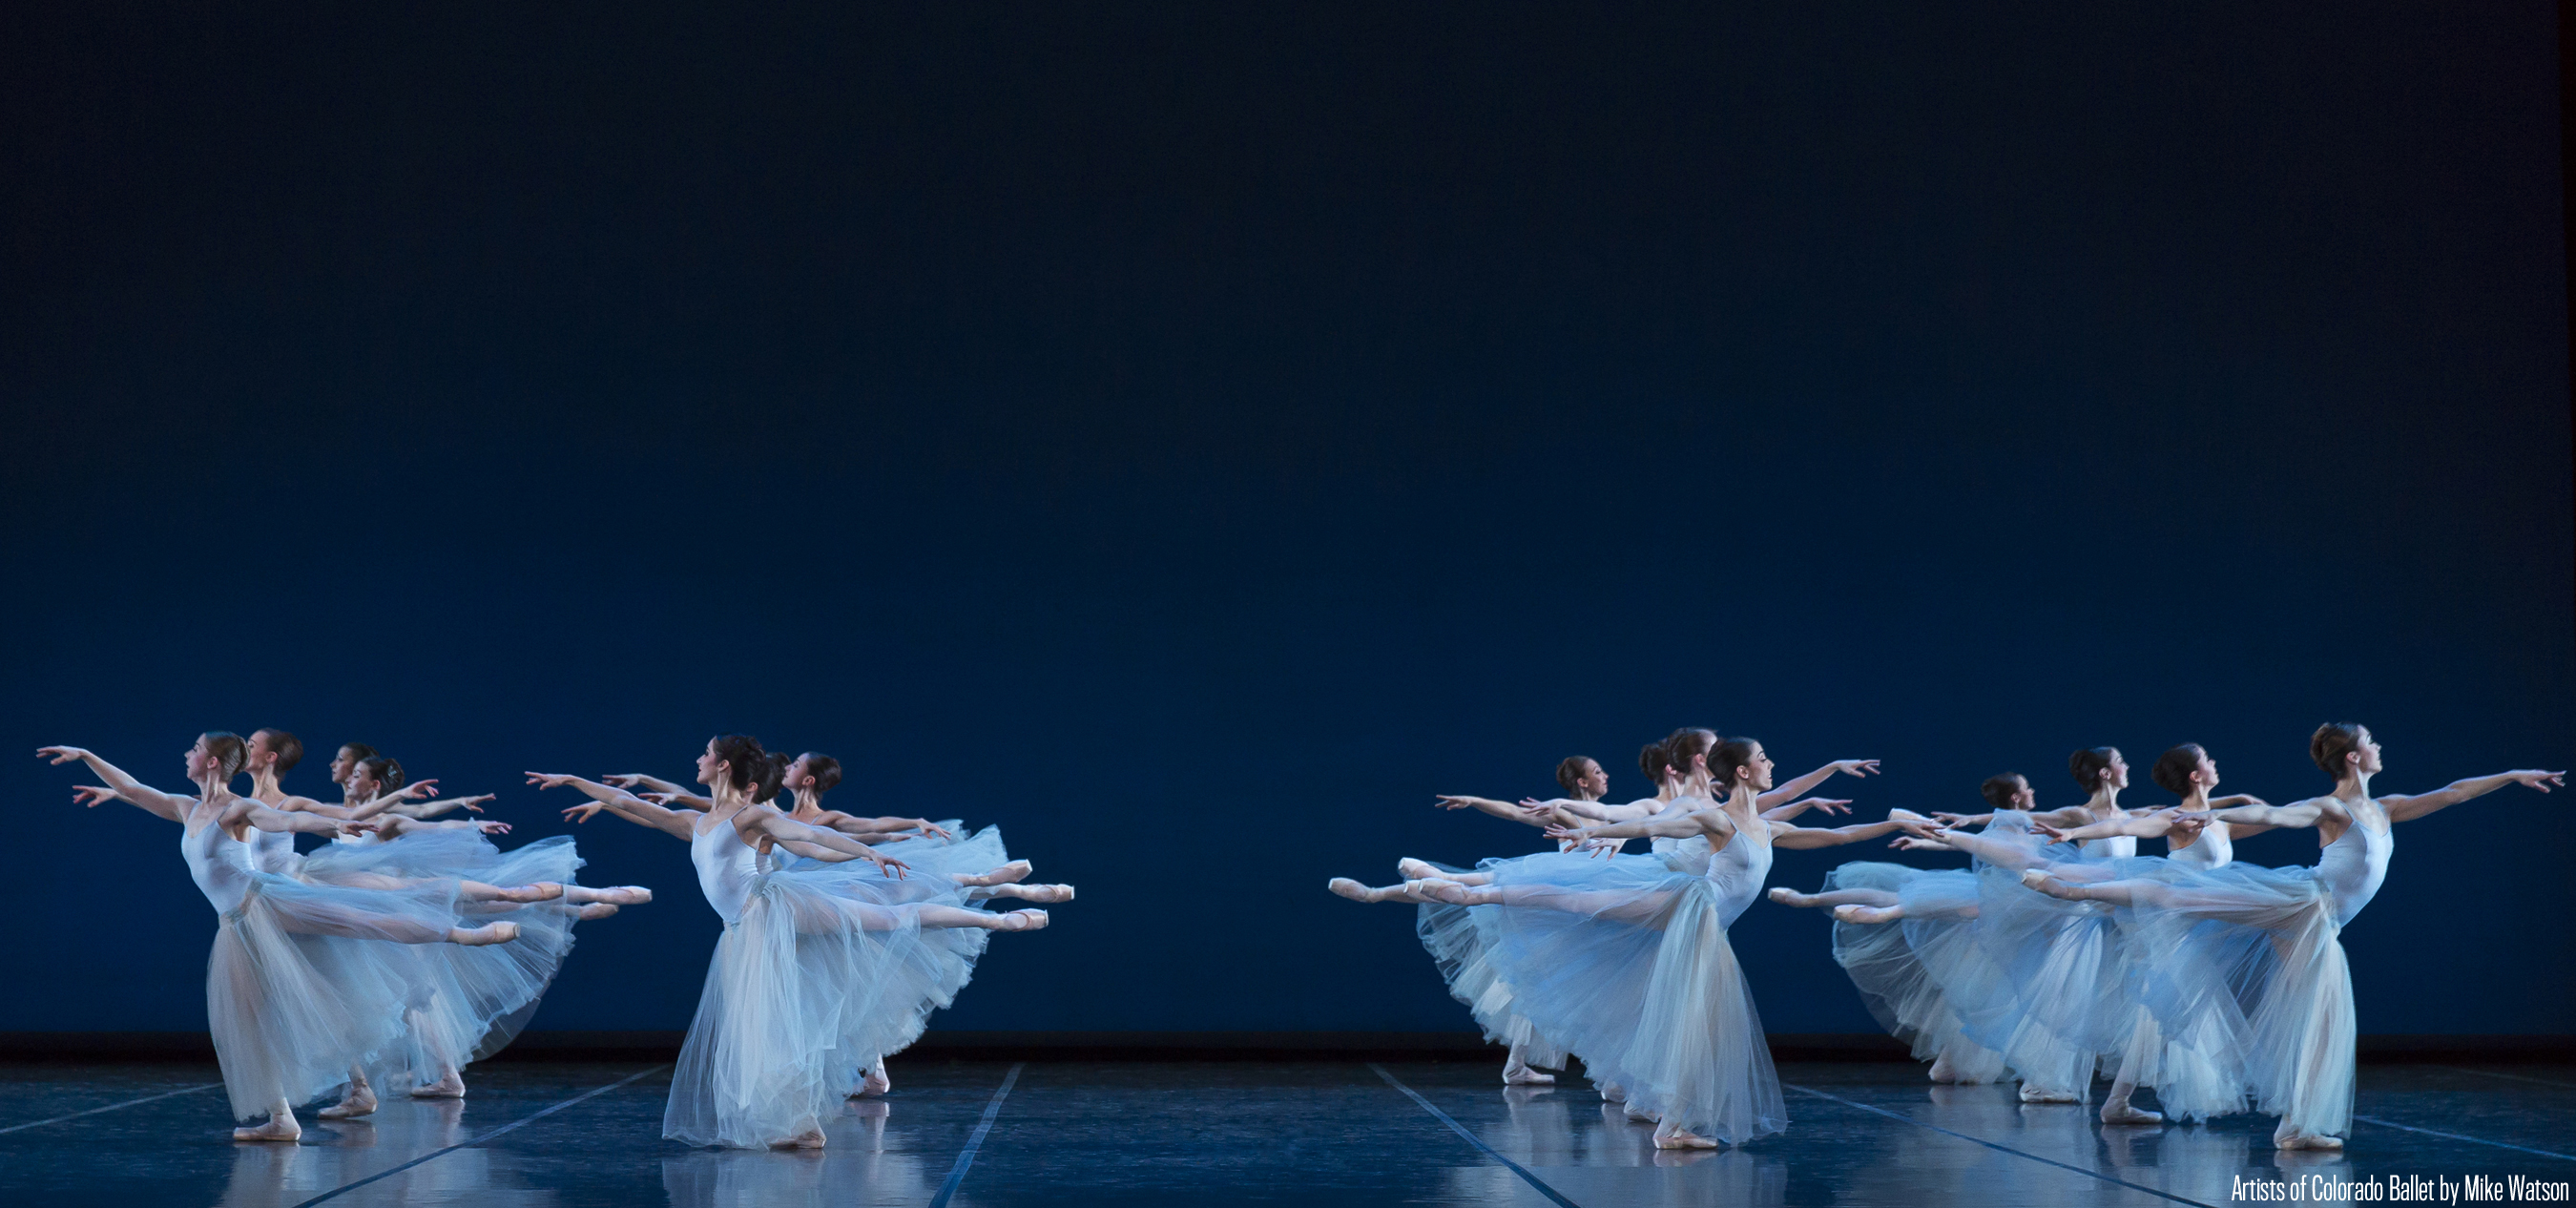 Artists of Colorado Ballet in Serenade - photo by Mike Watson